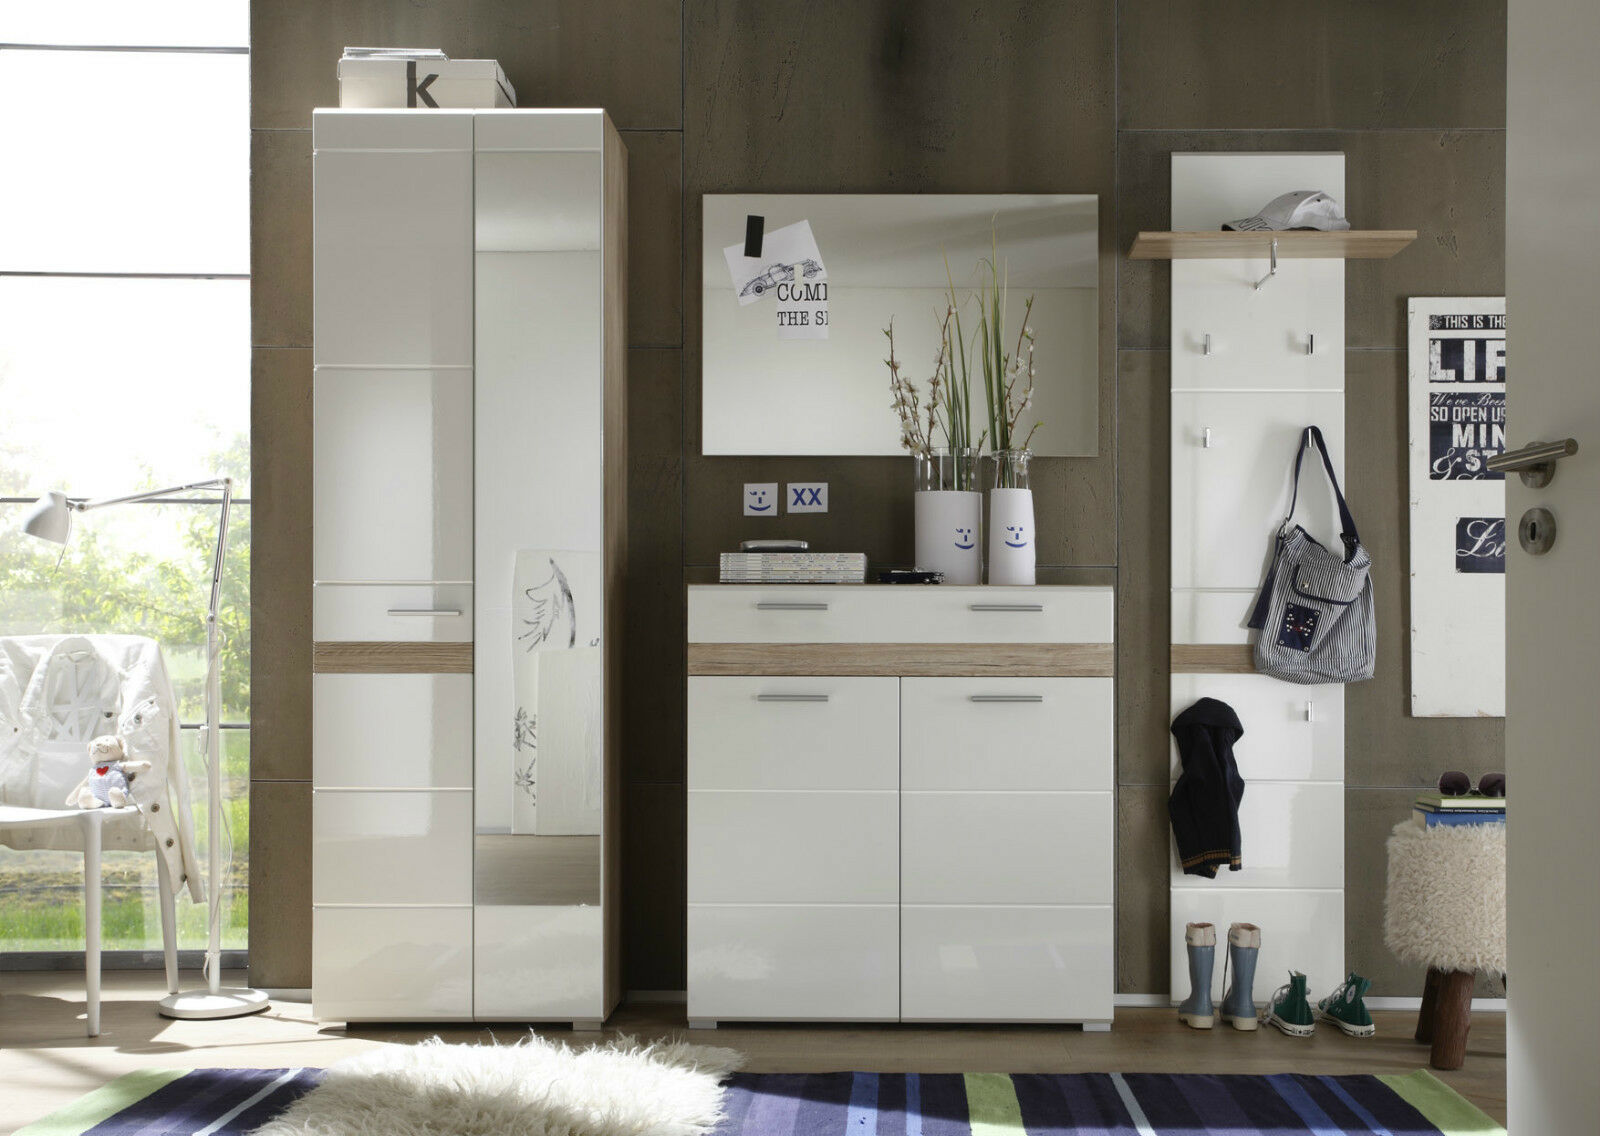 garderobe garderobenpaneel in wei hochglanz und eiche hell setone flurgarderobe eur 77 77. Black Bedroom Furniture Sets. Home Design Ideas